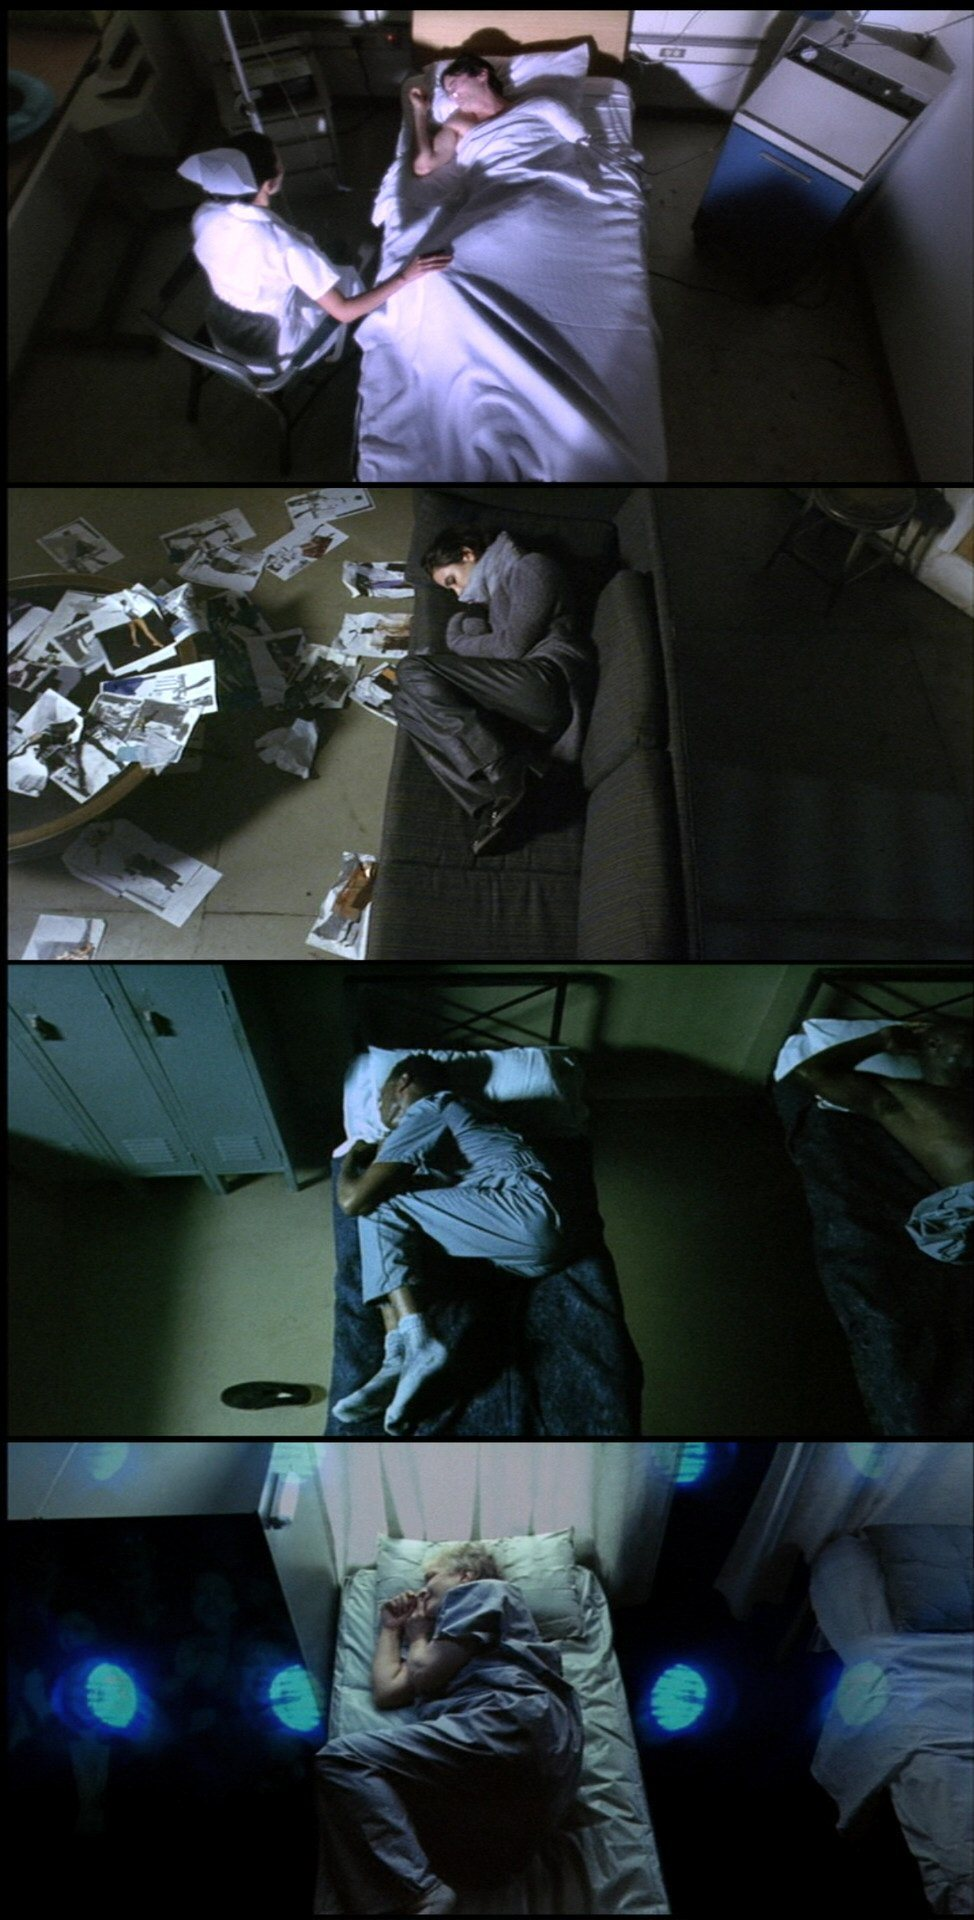 moviesinframes:  Requiem for a Dream, 2000 (dir. Darren Aronofsky)By perception-is-selection